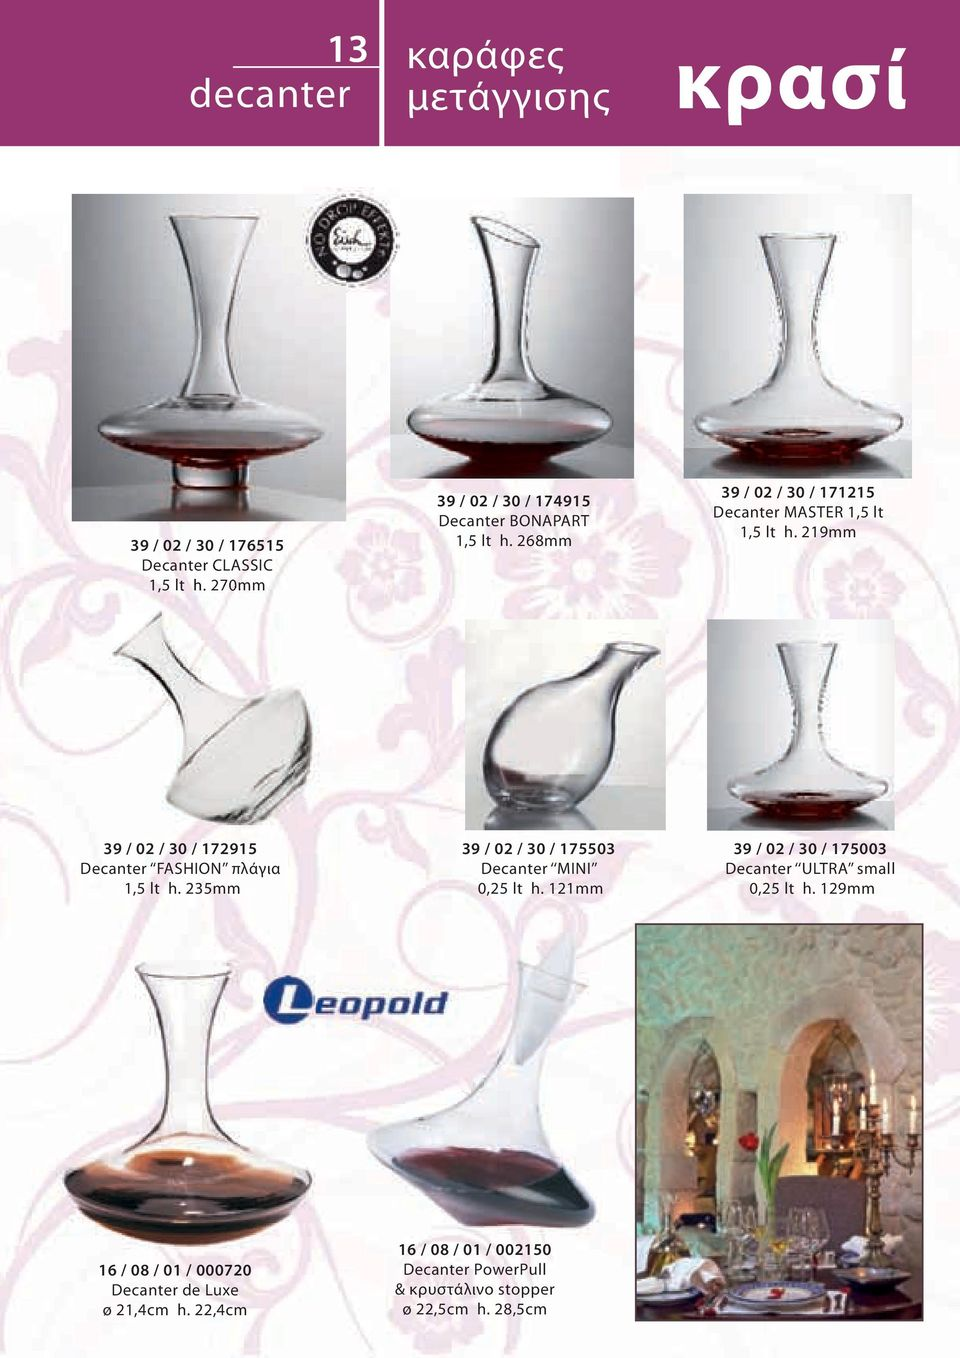 219mm 39 / 02 / 30 / 172915 Decanter FASHION πλάγια 1,5 lt h. 235mm 39 / 02 / 30 / 175503 Decanter ΜΙΝΙ 0,25 lt h.